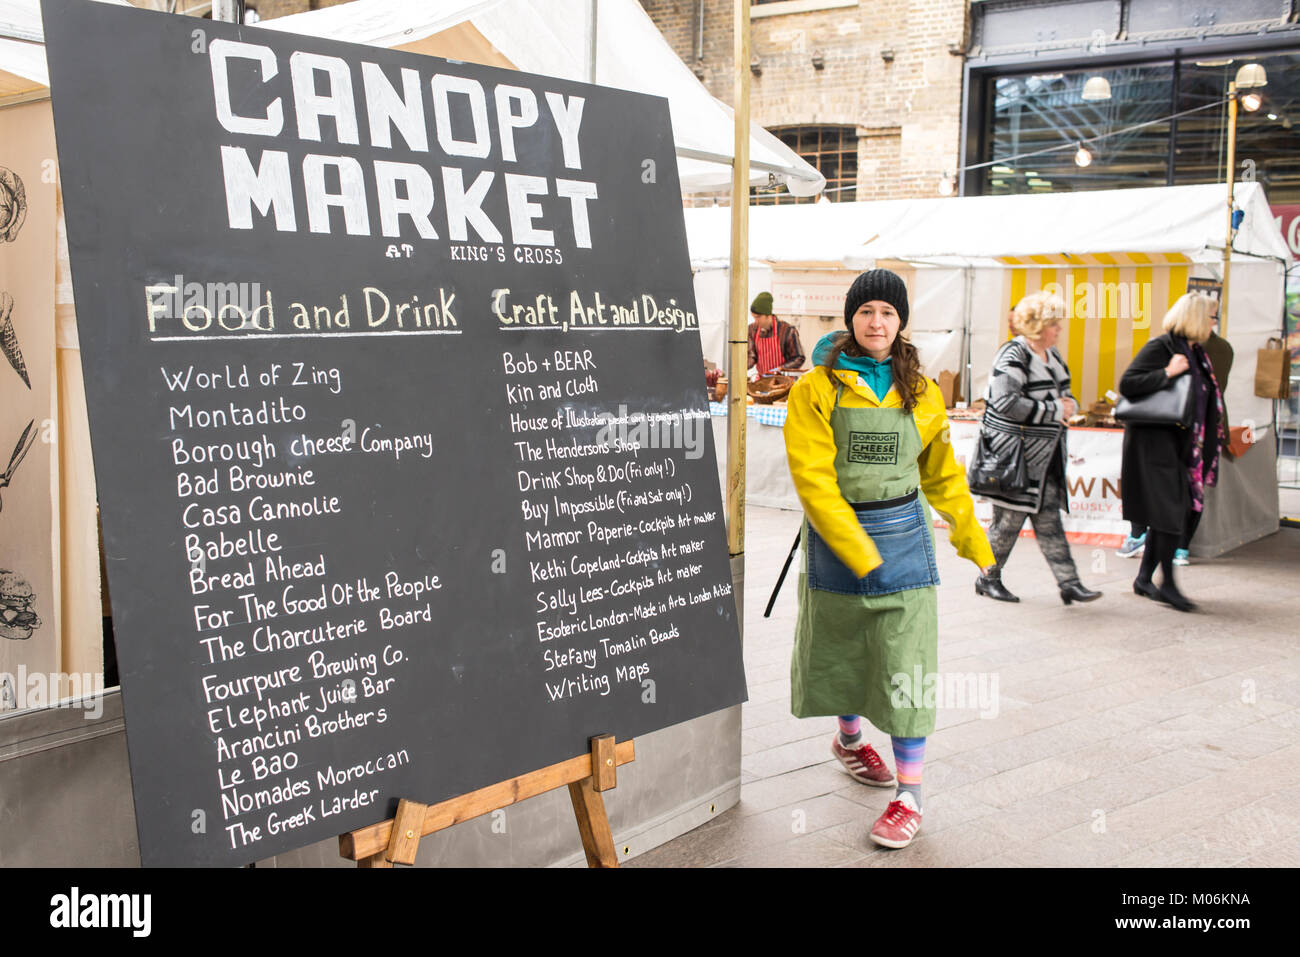 Stall owner walking in front of a billboard promoting the Canopy Market, King's Cross, London. Canopy market - Stock Image